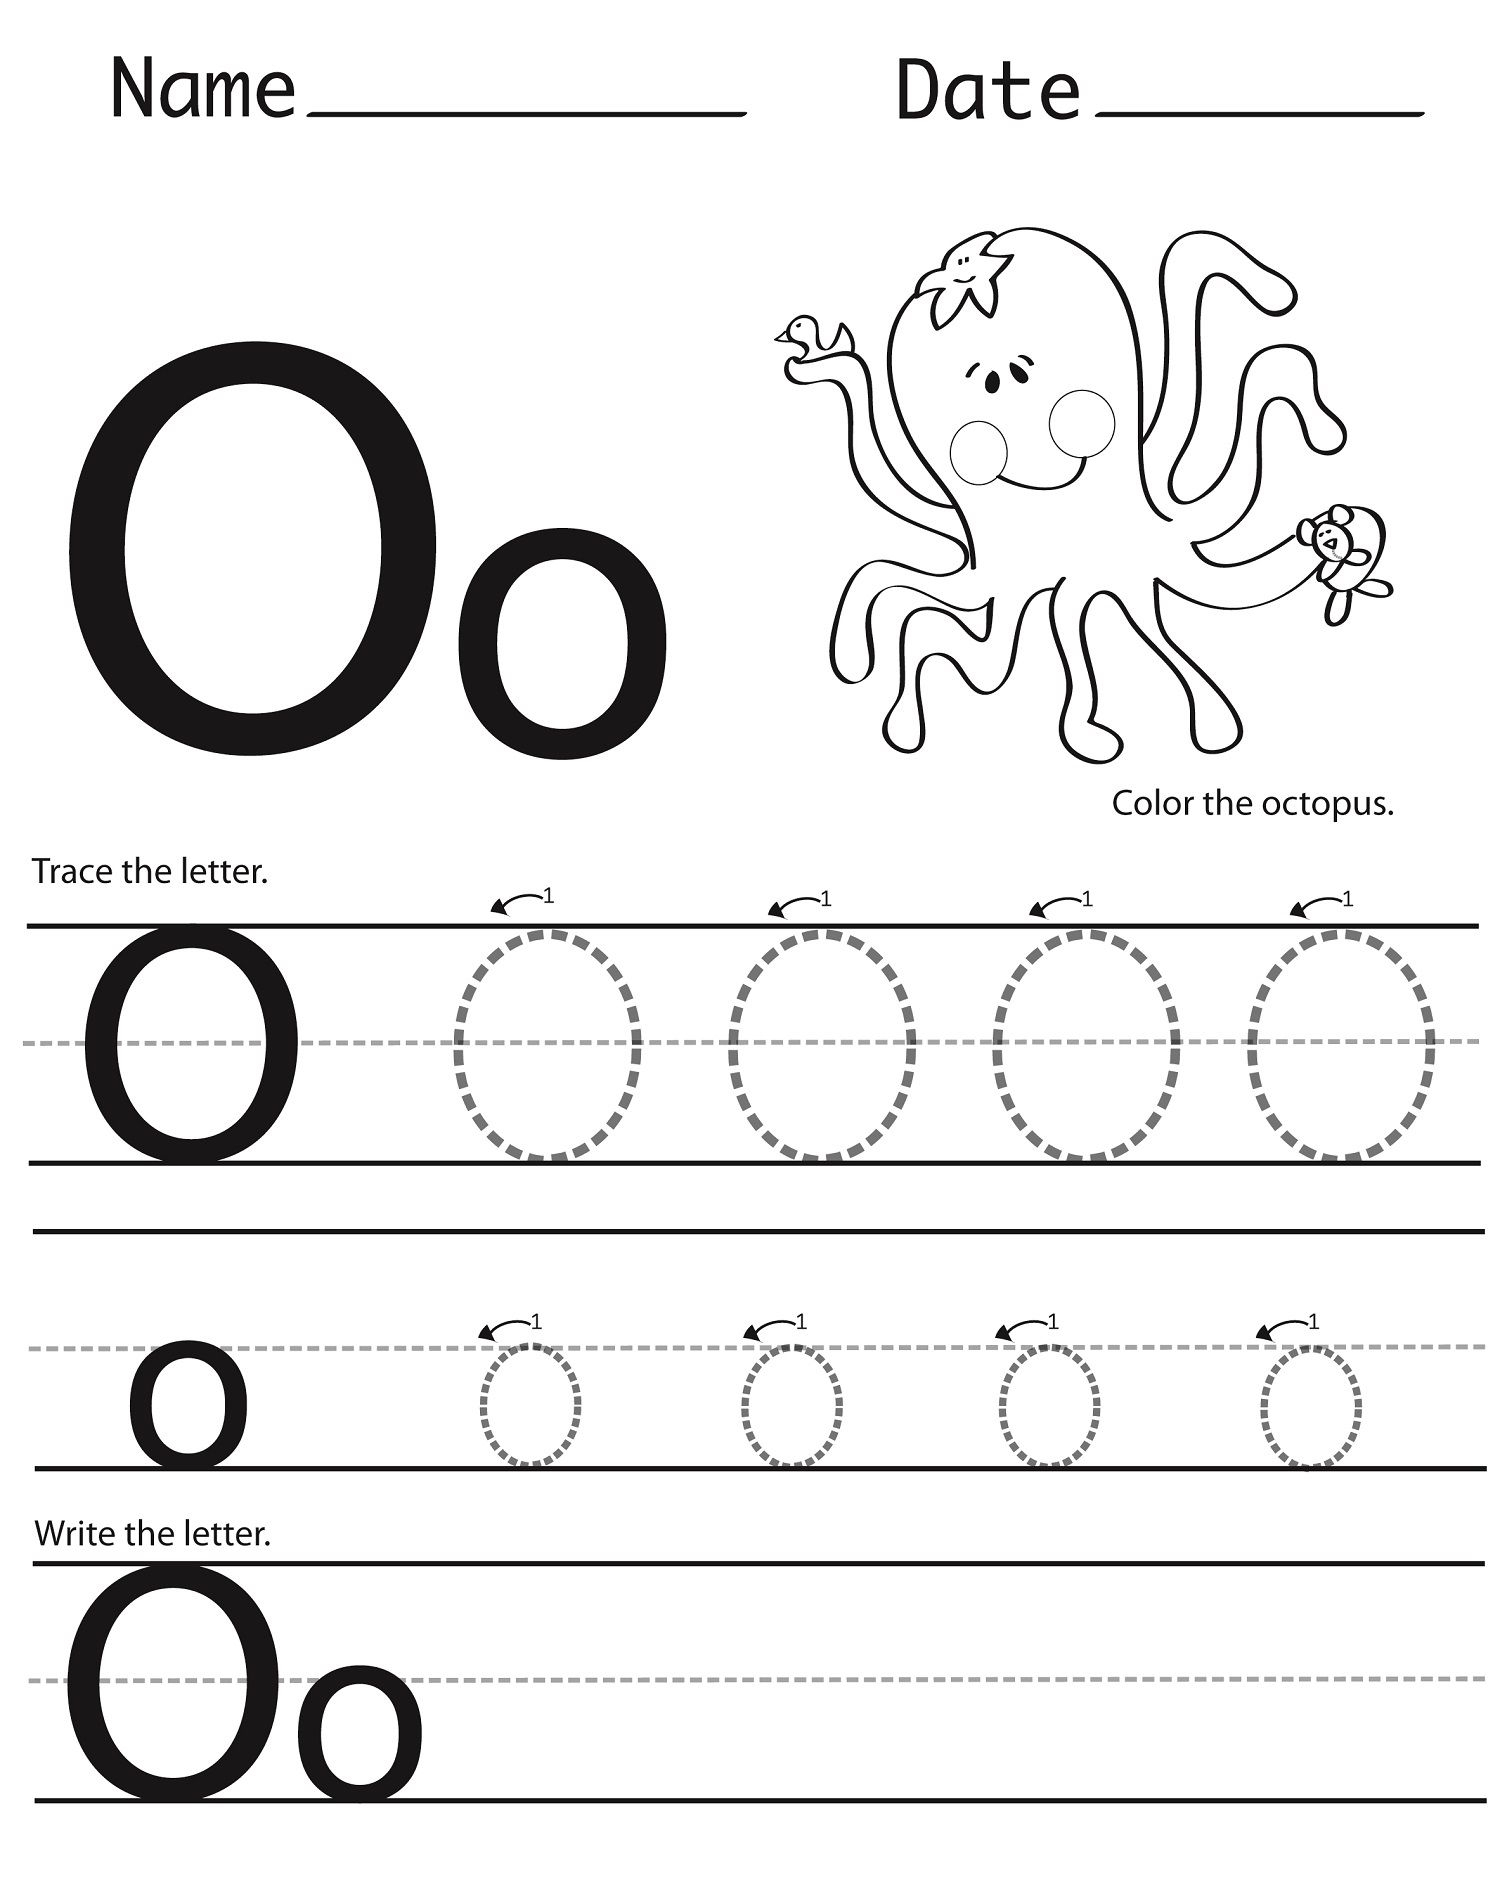 12 Captivating Letter O Worksheets | Kittybabylove within Letter O Worksheets Free Printable